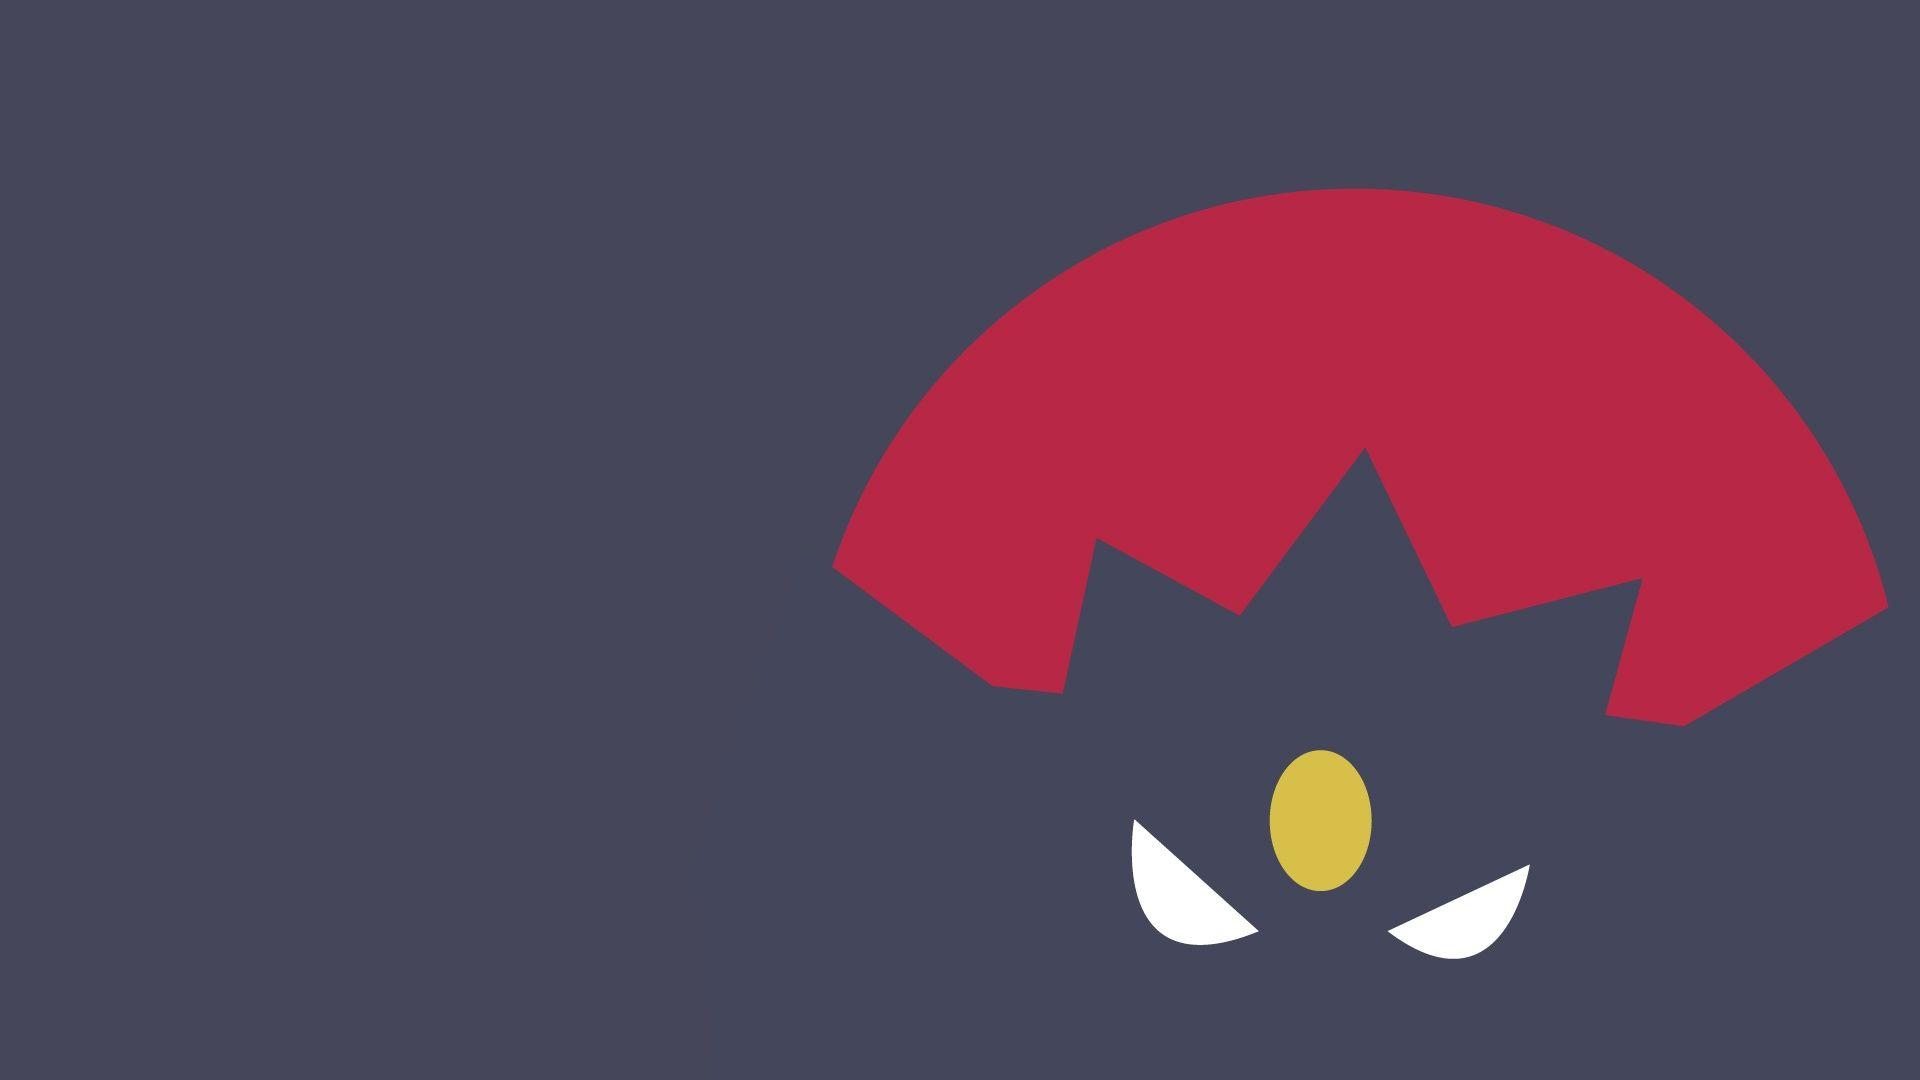 Download Weavile Wallpapers 47860 1920x1080 px High Resolution